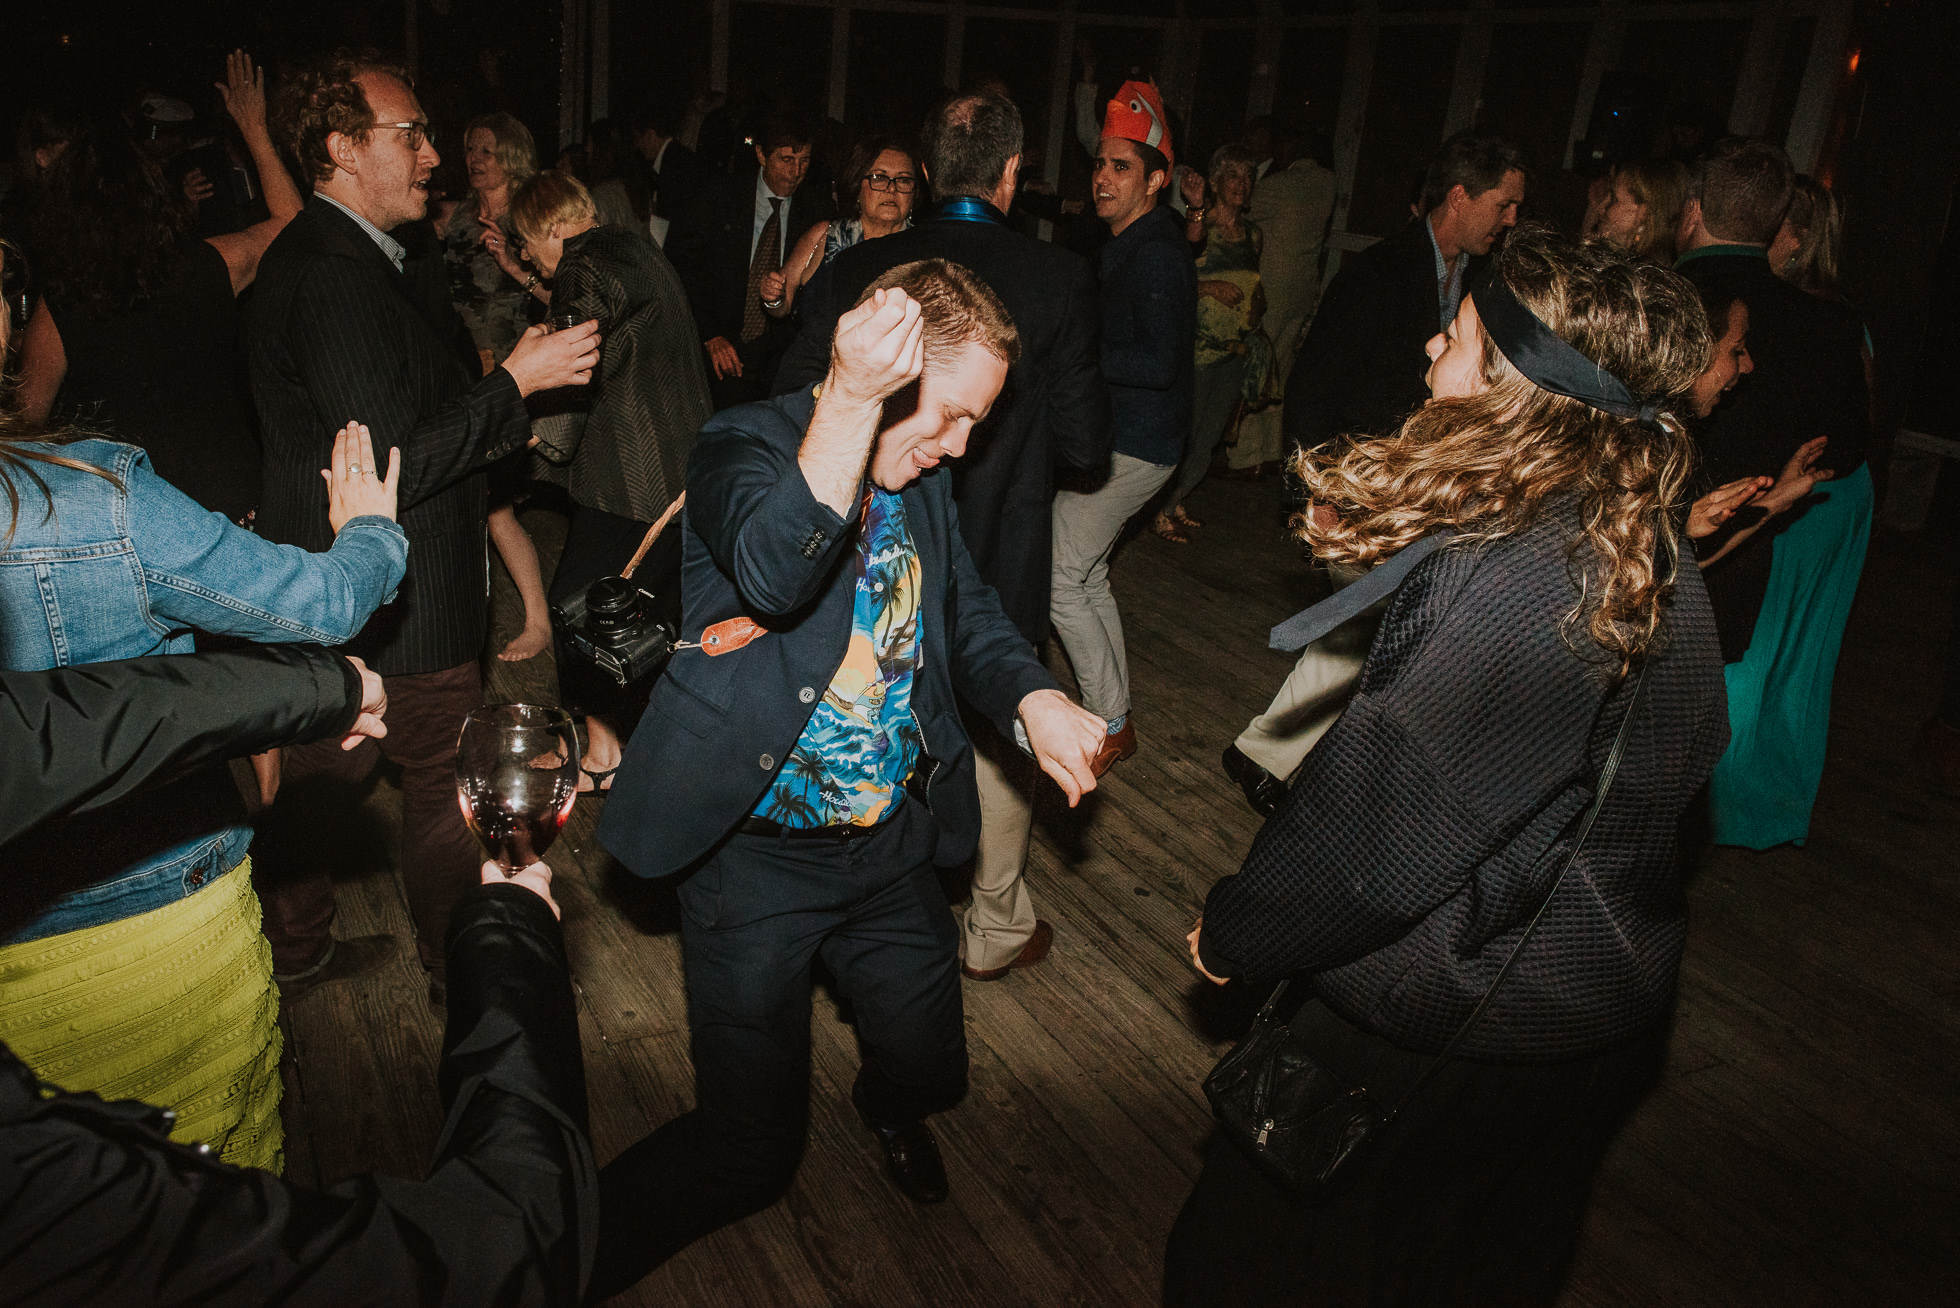 wild guests partying at reception Montauk wedding photographed by Traverse the Tides